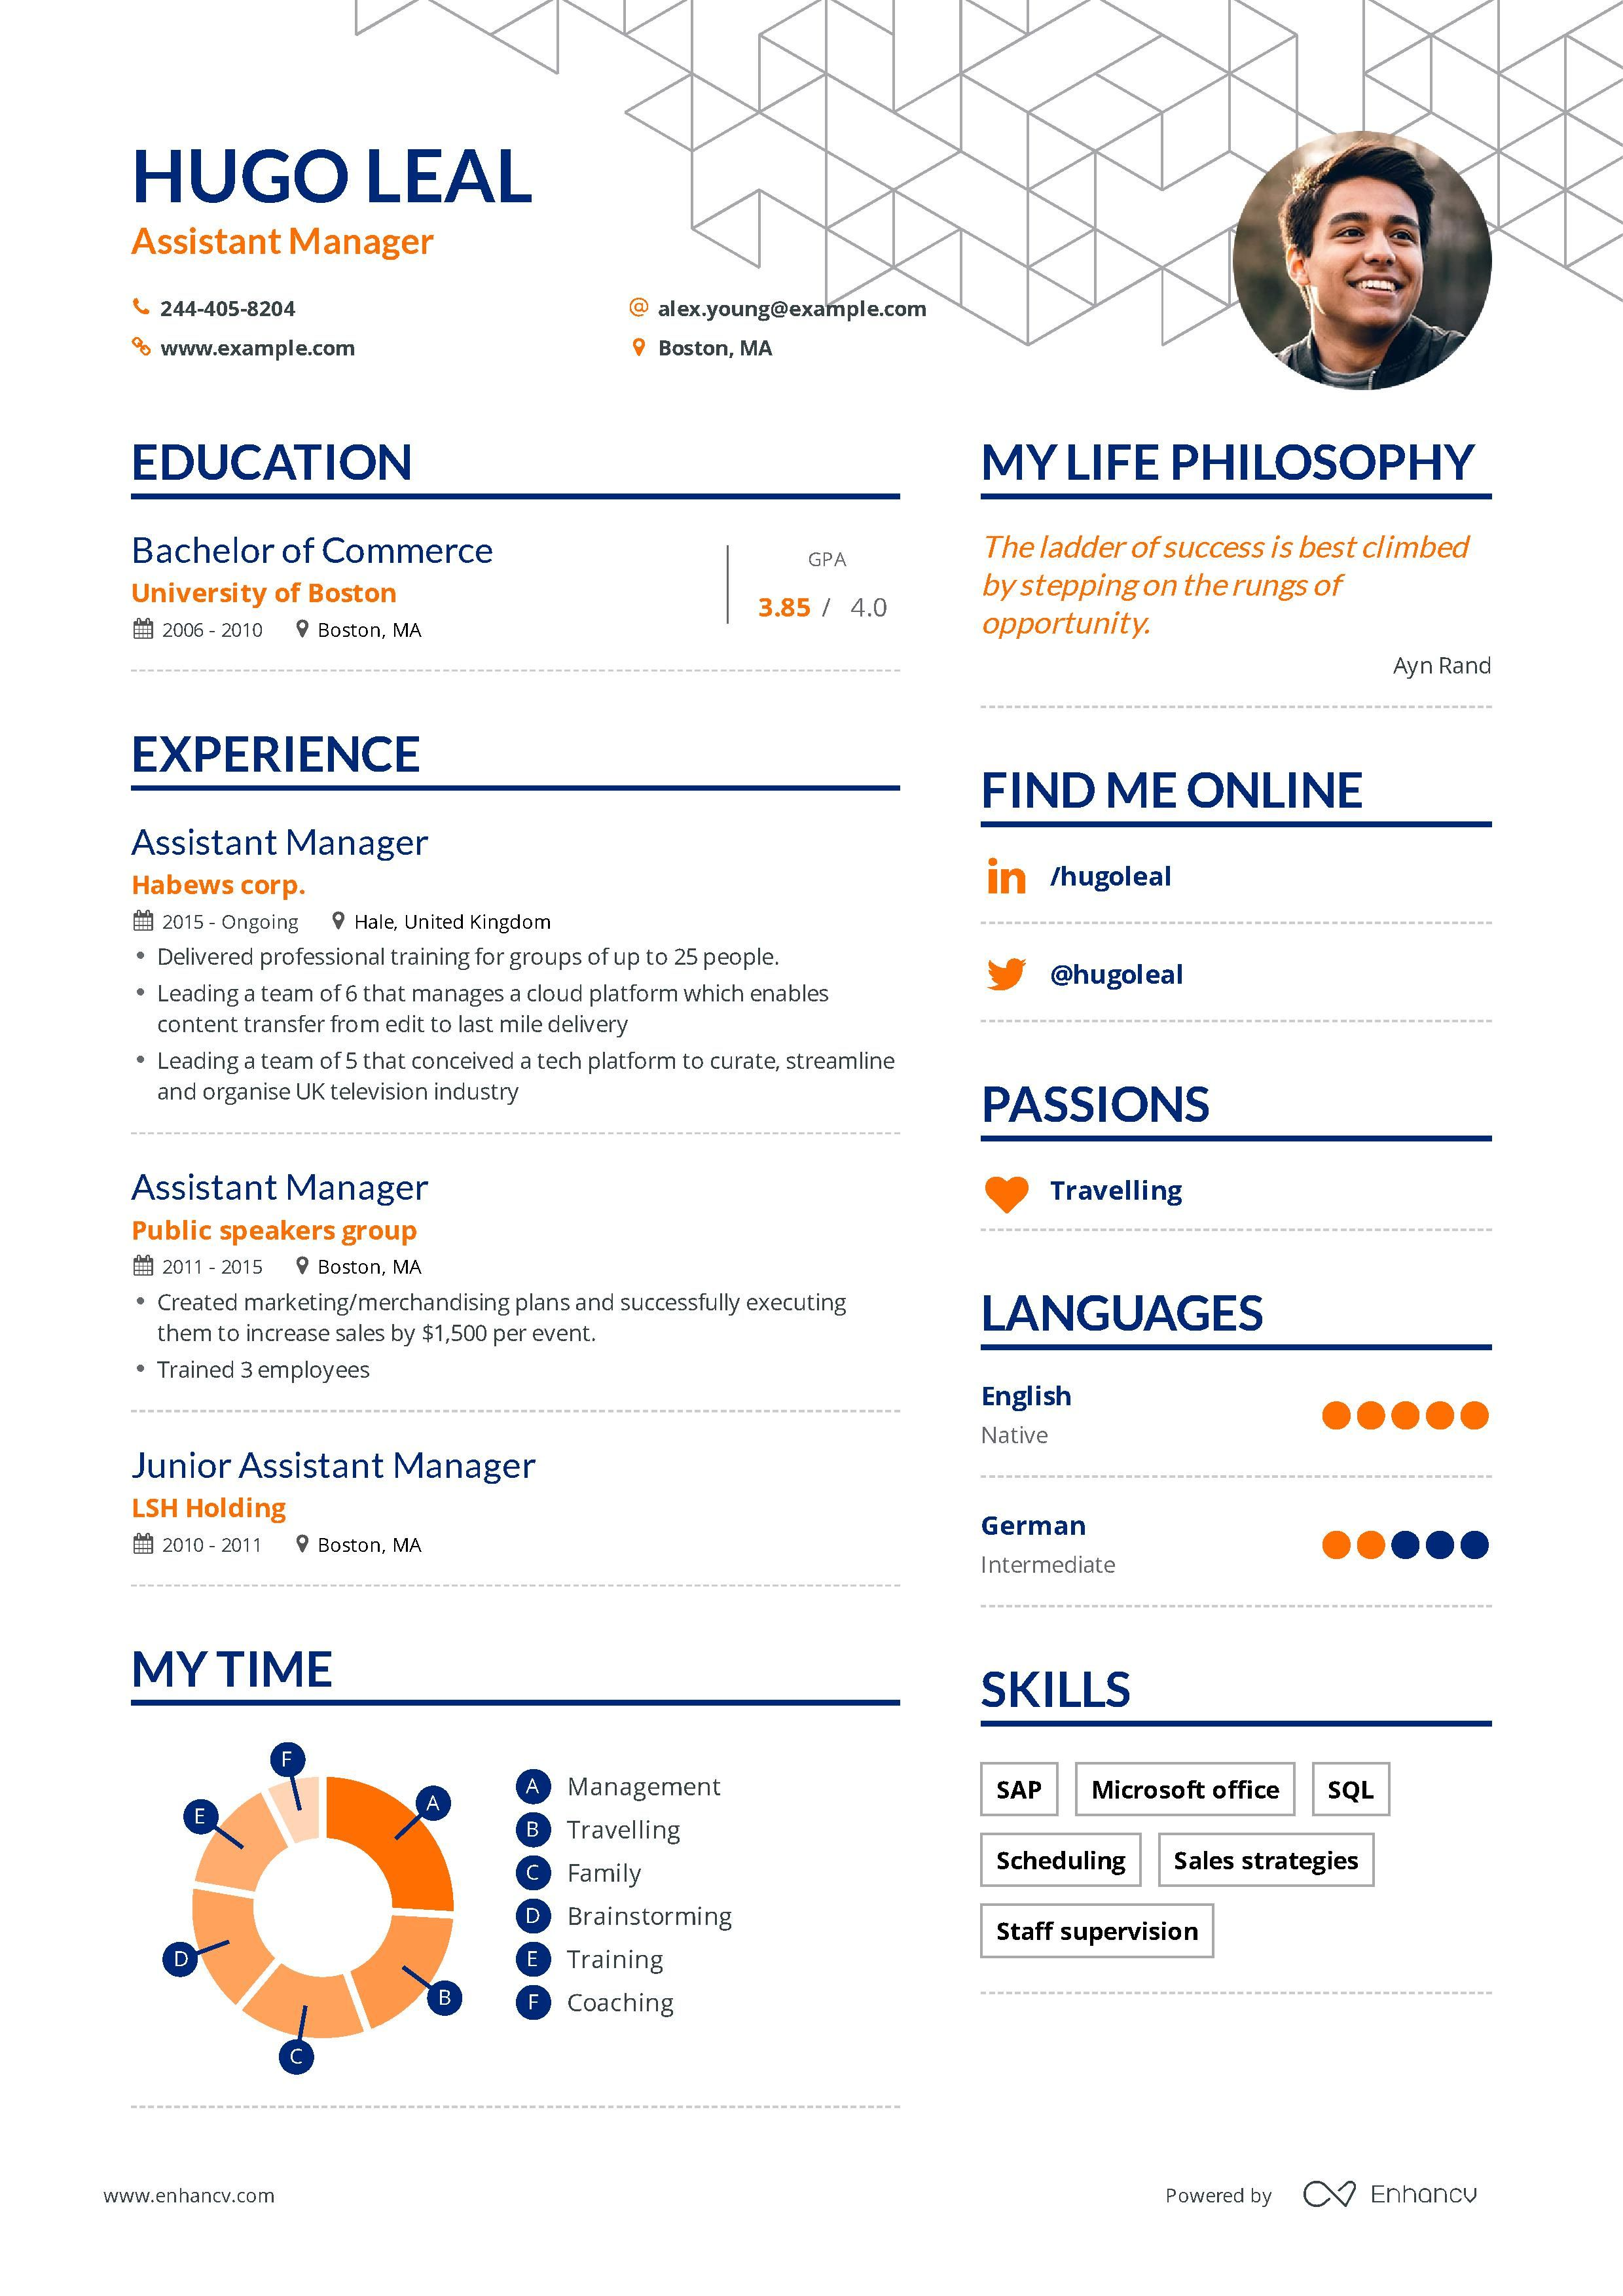 Assistant manager resume examples and skills you need to